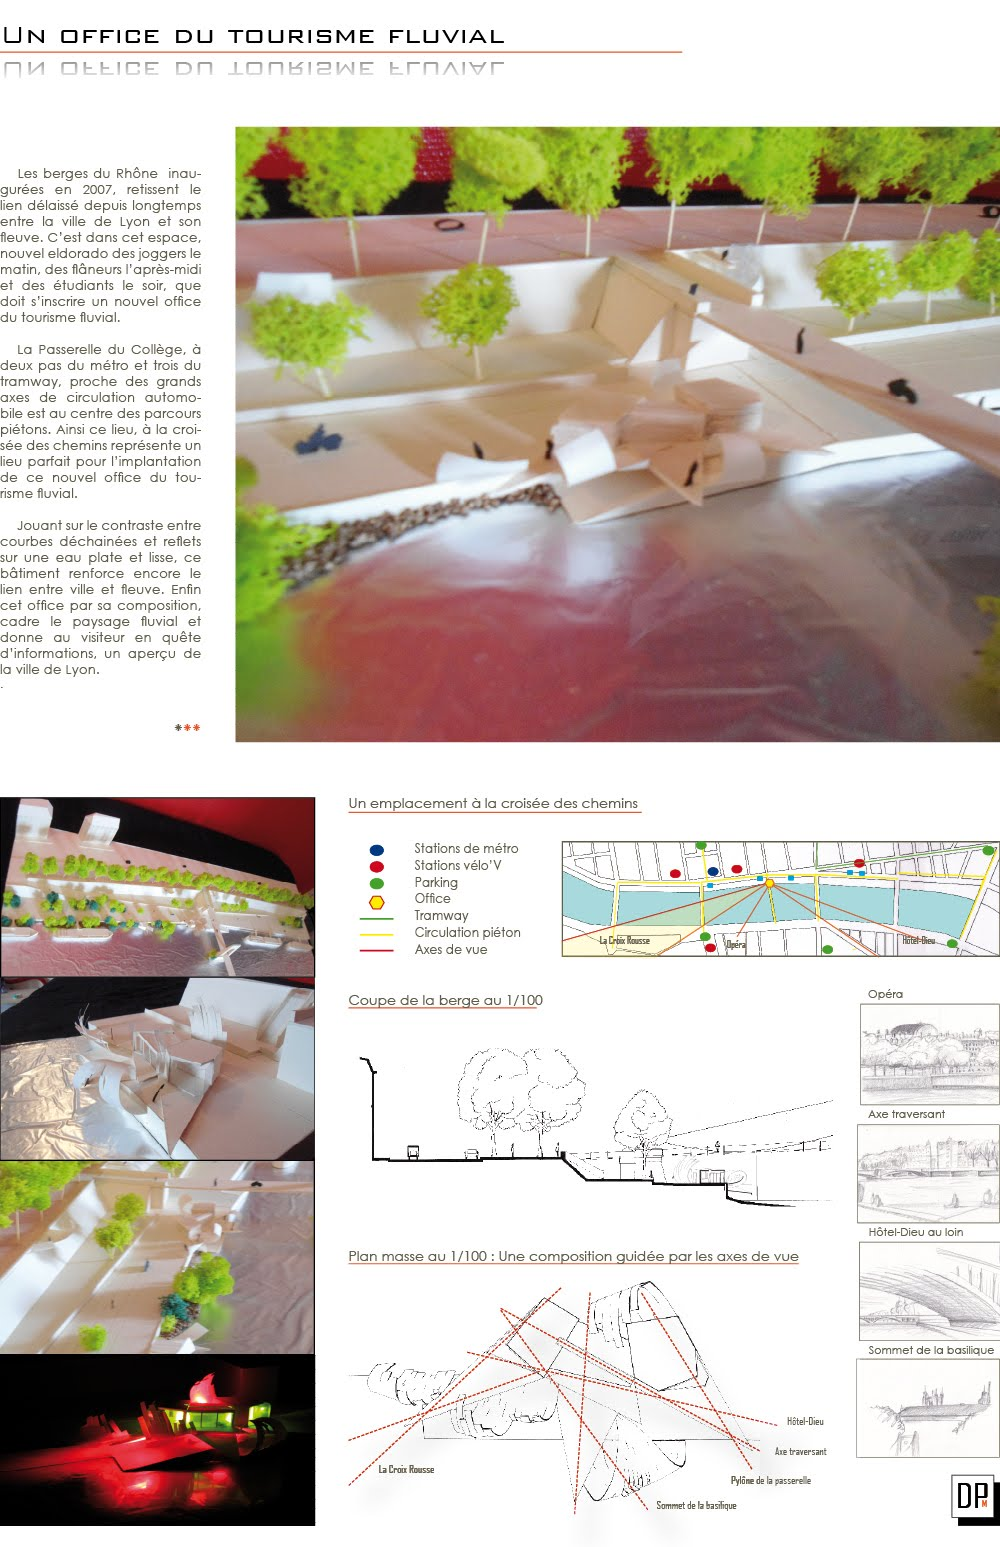 Office du tourisme fluvial denis petit m architecture work - Office du tourisme vendays montalivet ...